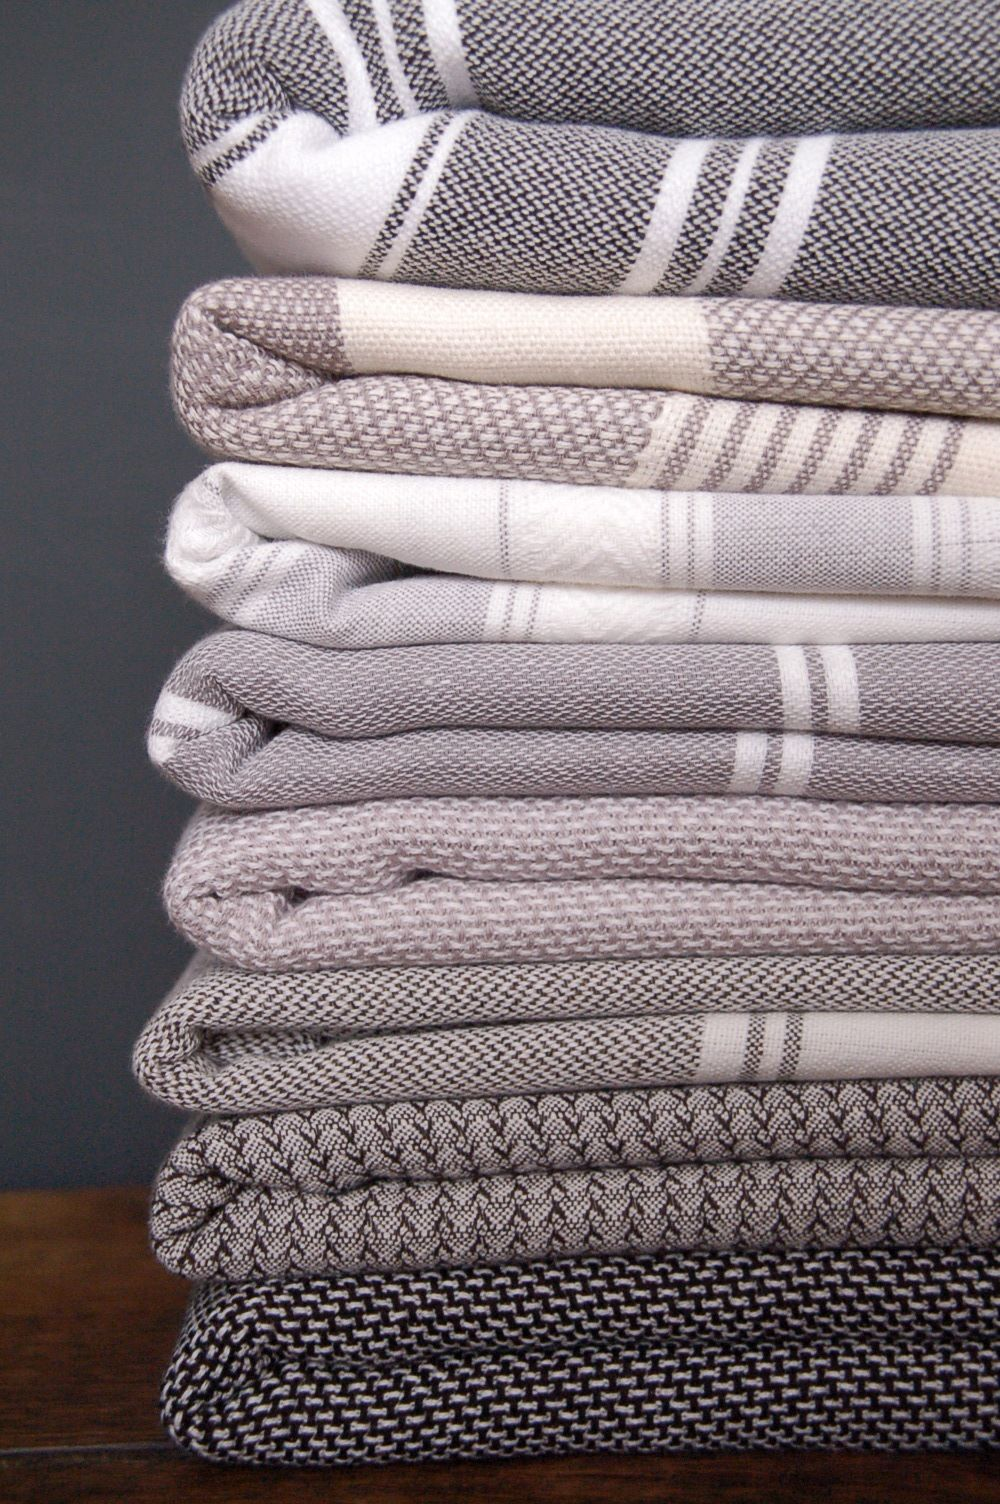 turkish hama towels from neutral house uk textiles linens a collection of neutral house grey and black hamam towels to bring in a bit of colour to this predominantly grey bathroom